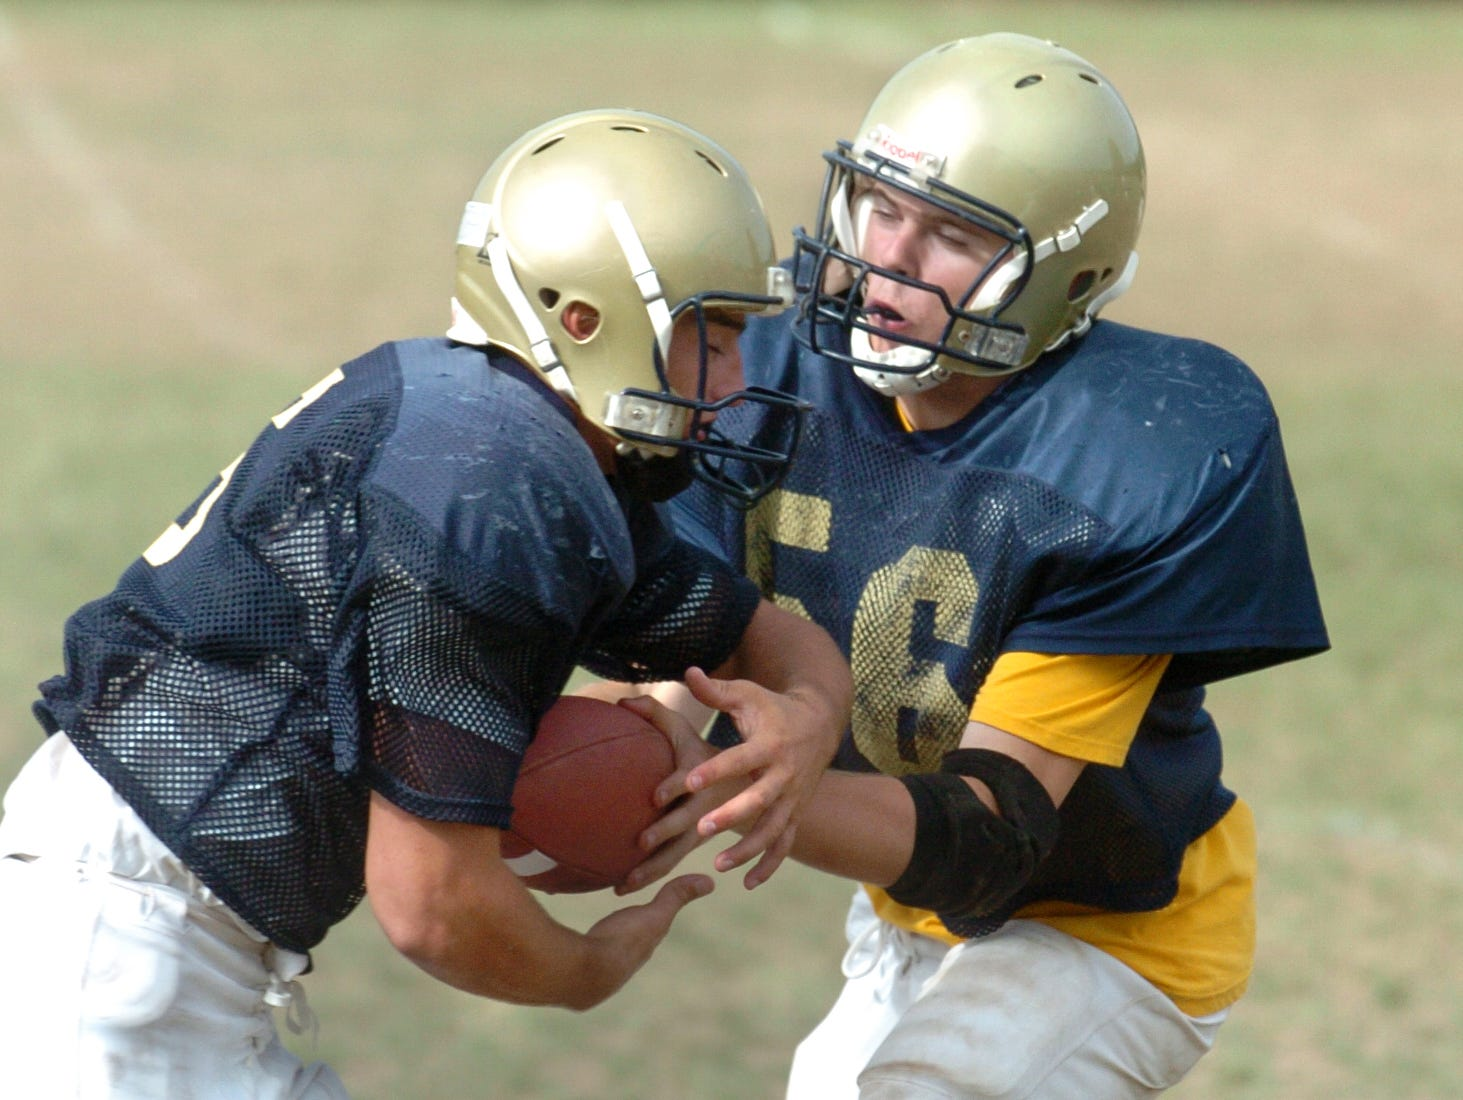 From 2005: Susquehanna Valley quarterback Ryan Wiggins, right, passes off to teammate John DePersiis during tuesday morning practice.